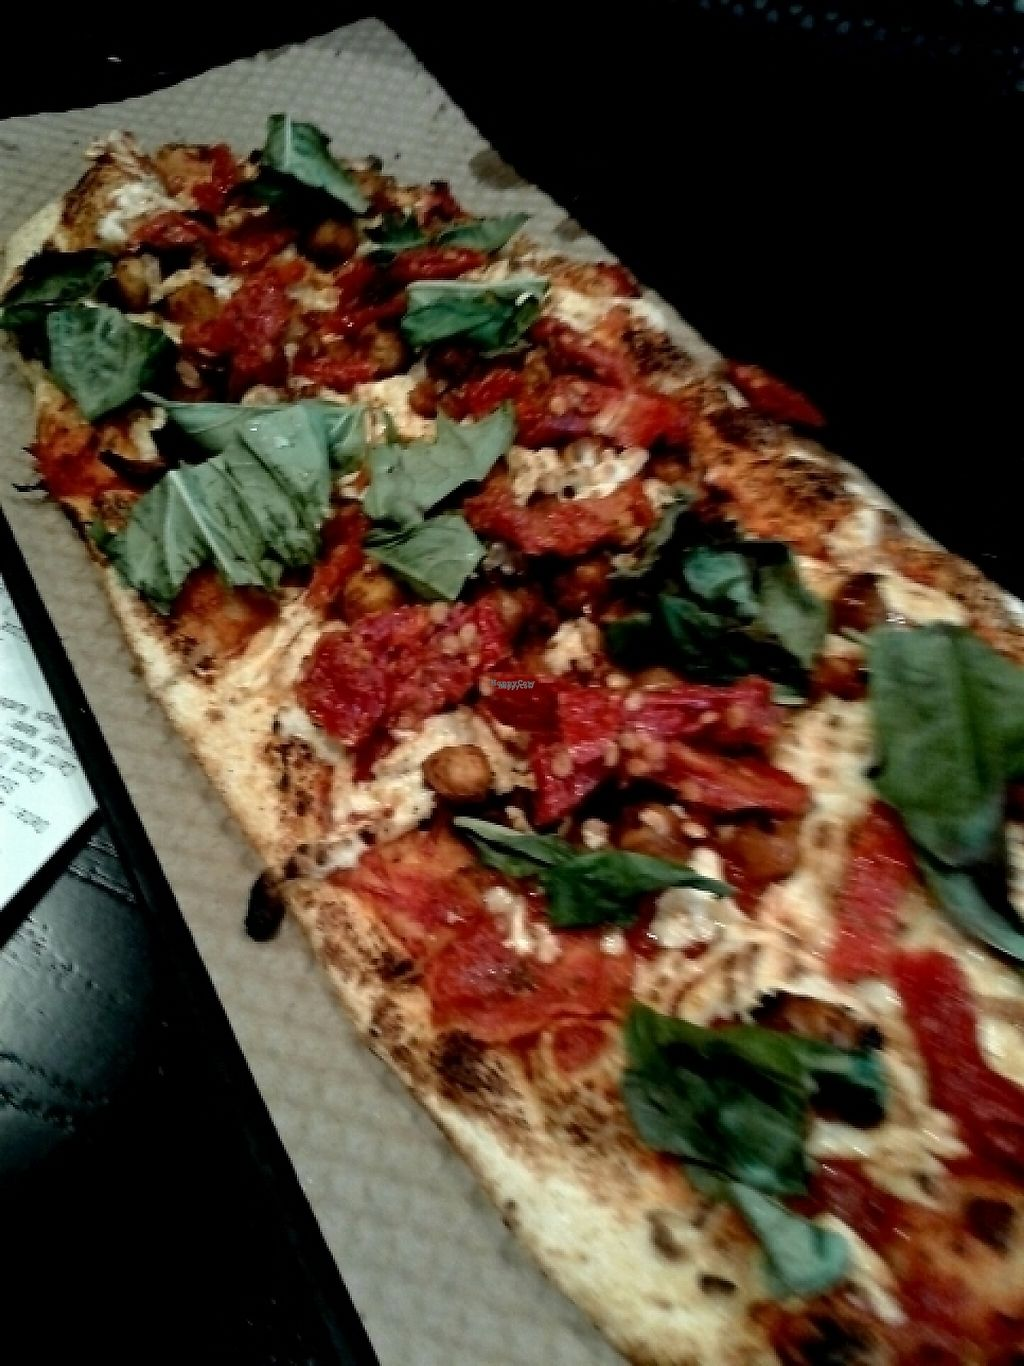 """Photo of &pizza - Airport  by <a href=""""/members/profile/JeffBlatnick"""">JeffBlatnick</a> <br/>spicy chickpea, wild grain crust, spicy sauce, basil, sun-dried tomatoes  <br/> April 24, 2017  - <a href='/contact/abuse/image/67872/252037'>Report</a>"""